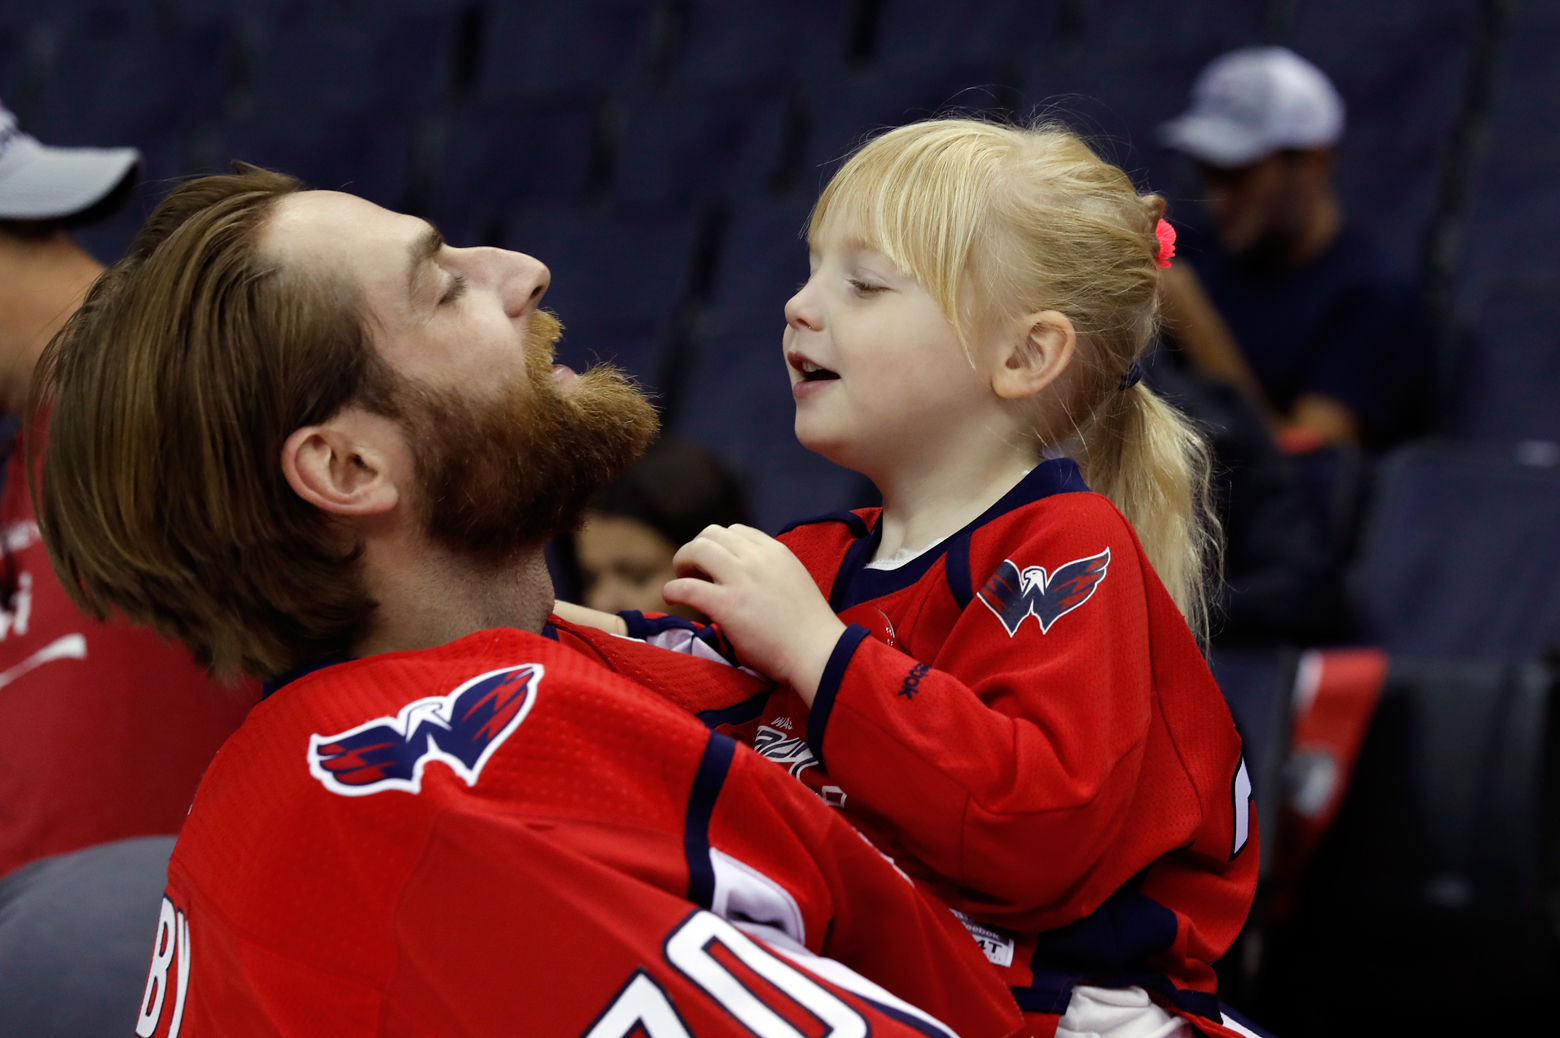 Washington Capitals goaltender Braden Holtby holds his daughter Belle Holtby on the ice after the Capitals NHL hockey team posed for a team picture with the Stanley Cup on the ice at Capital One Arena. (AP Photo/Alex Brandon)